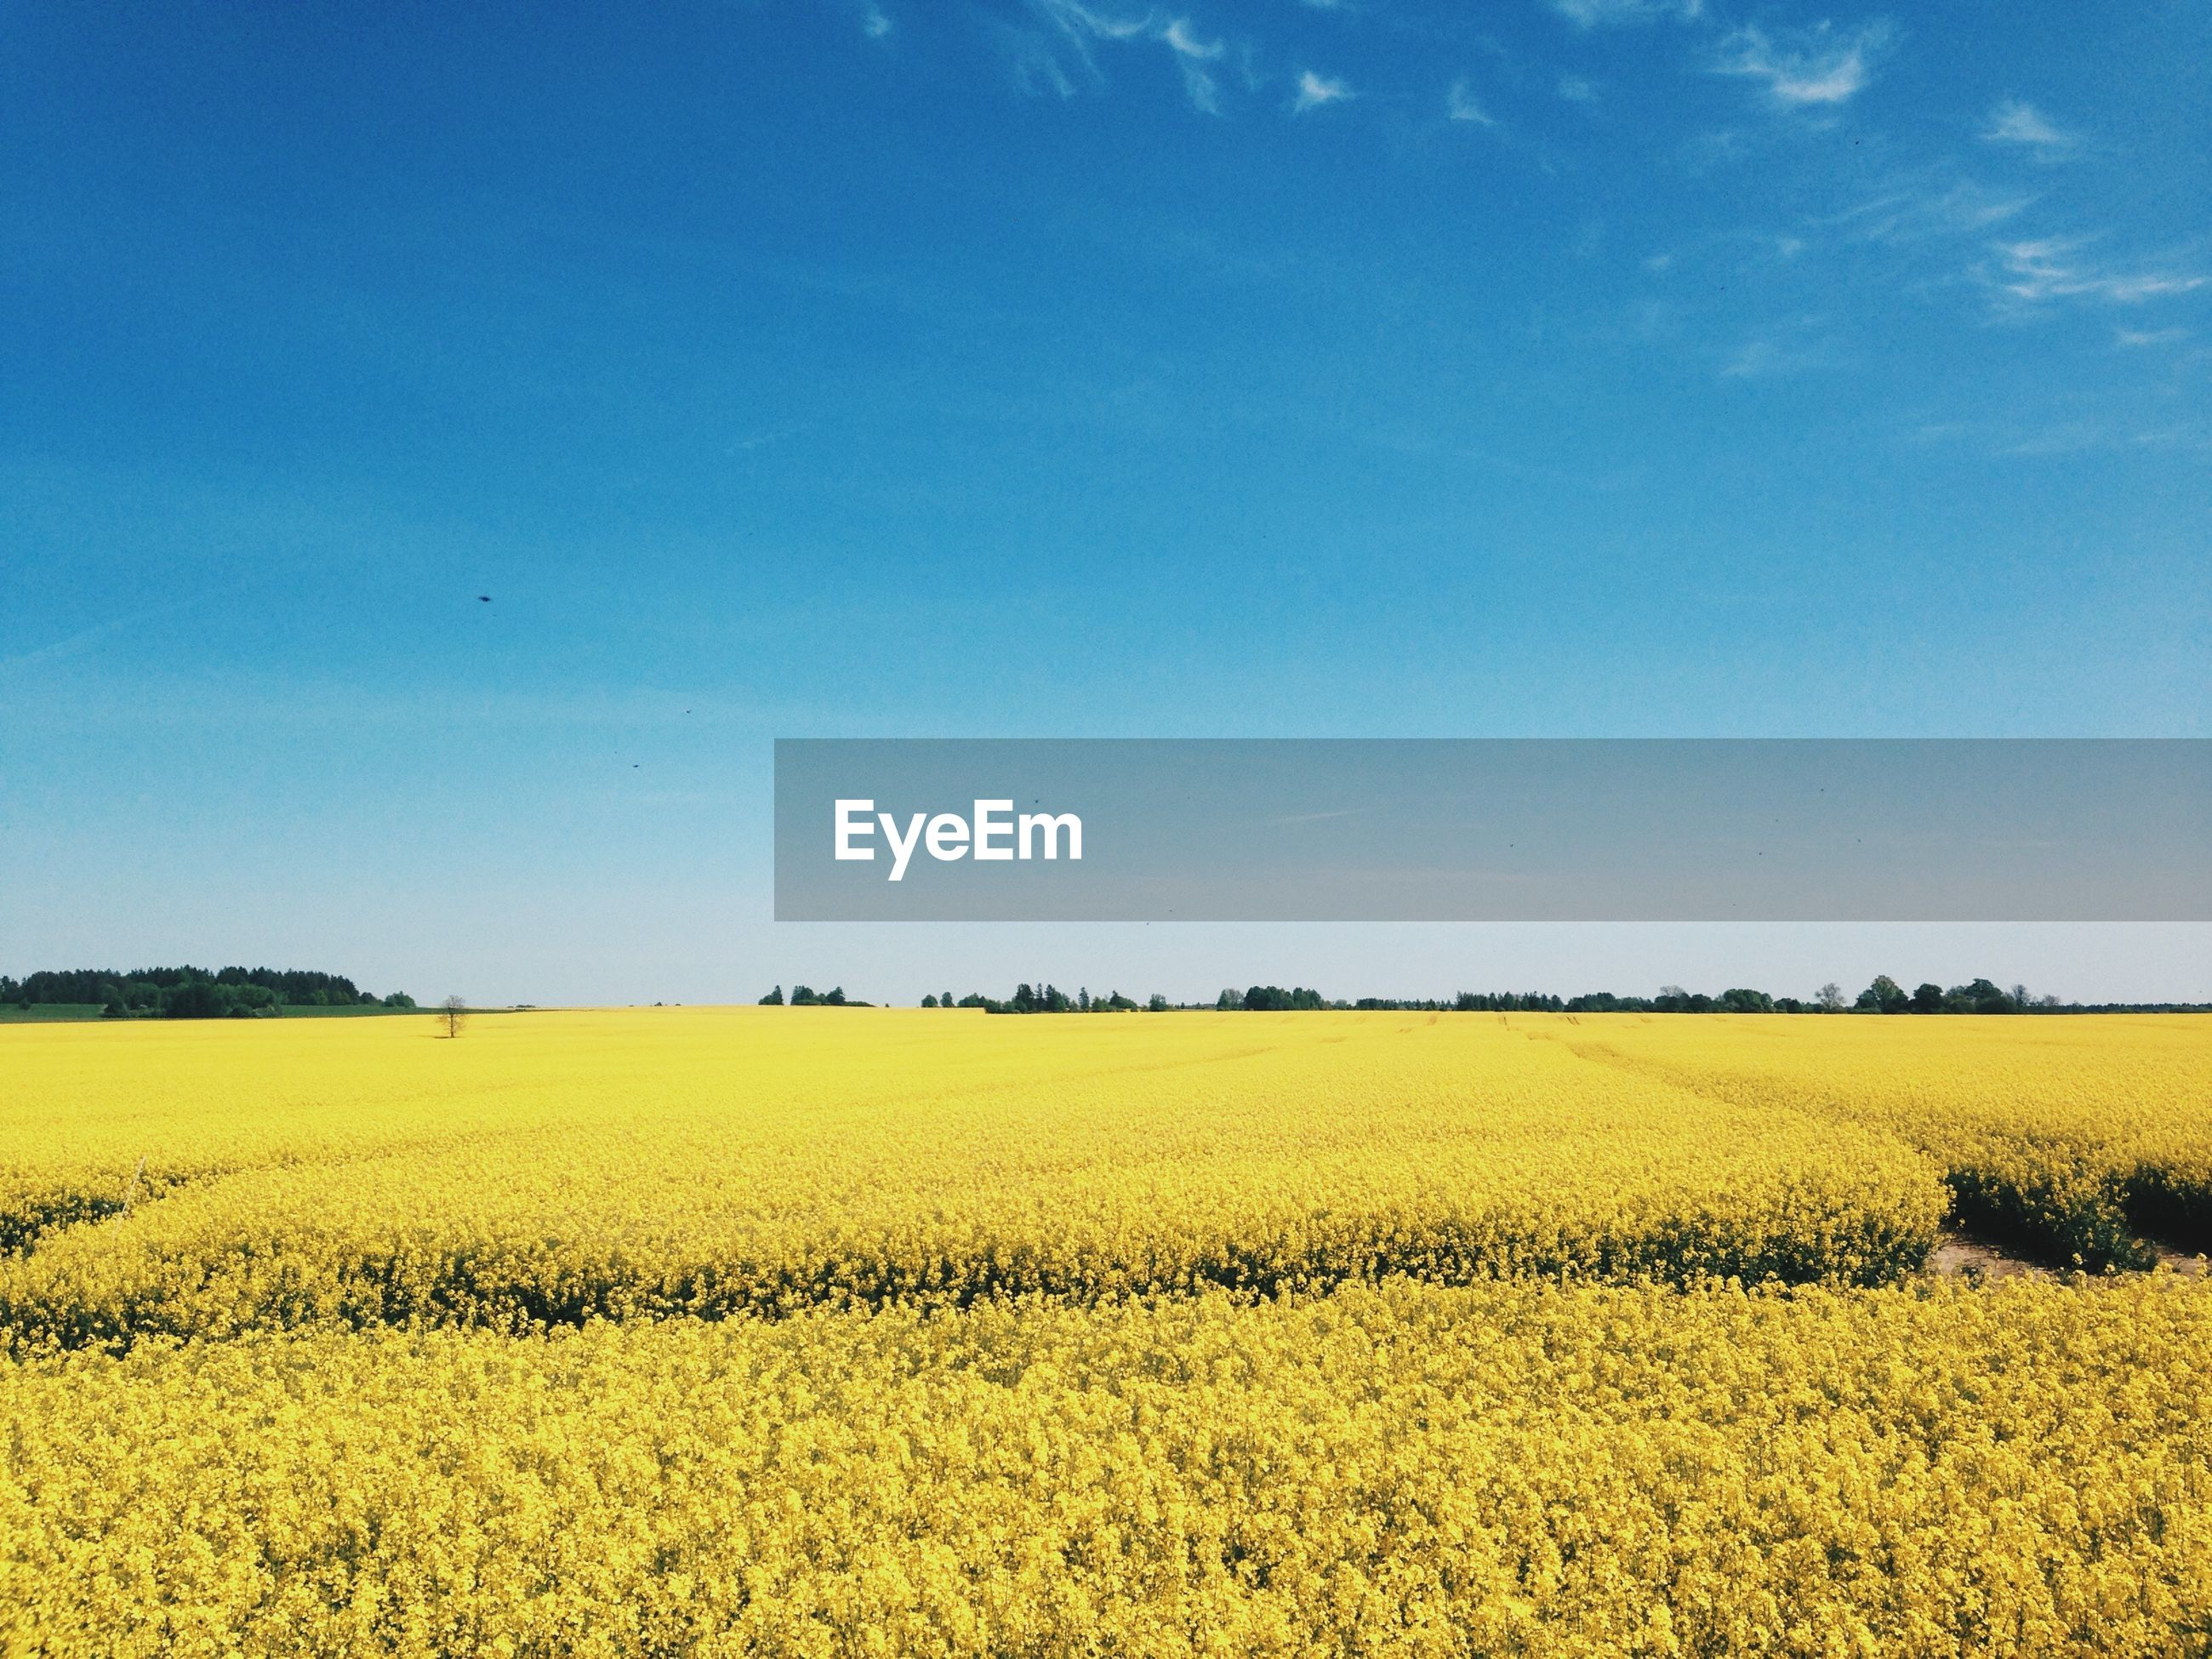 SCENIC VIEW OF YELLOW FIELD AGAINST CLEAR BLUE SKY